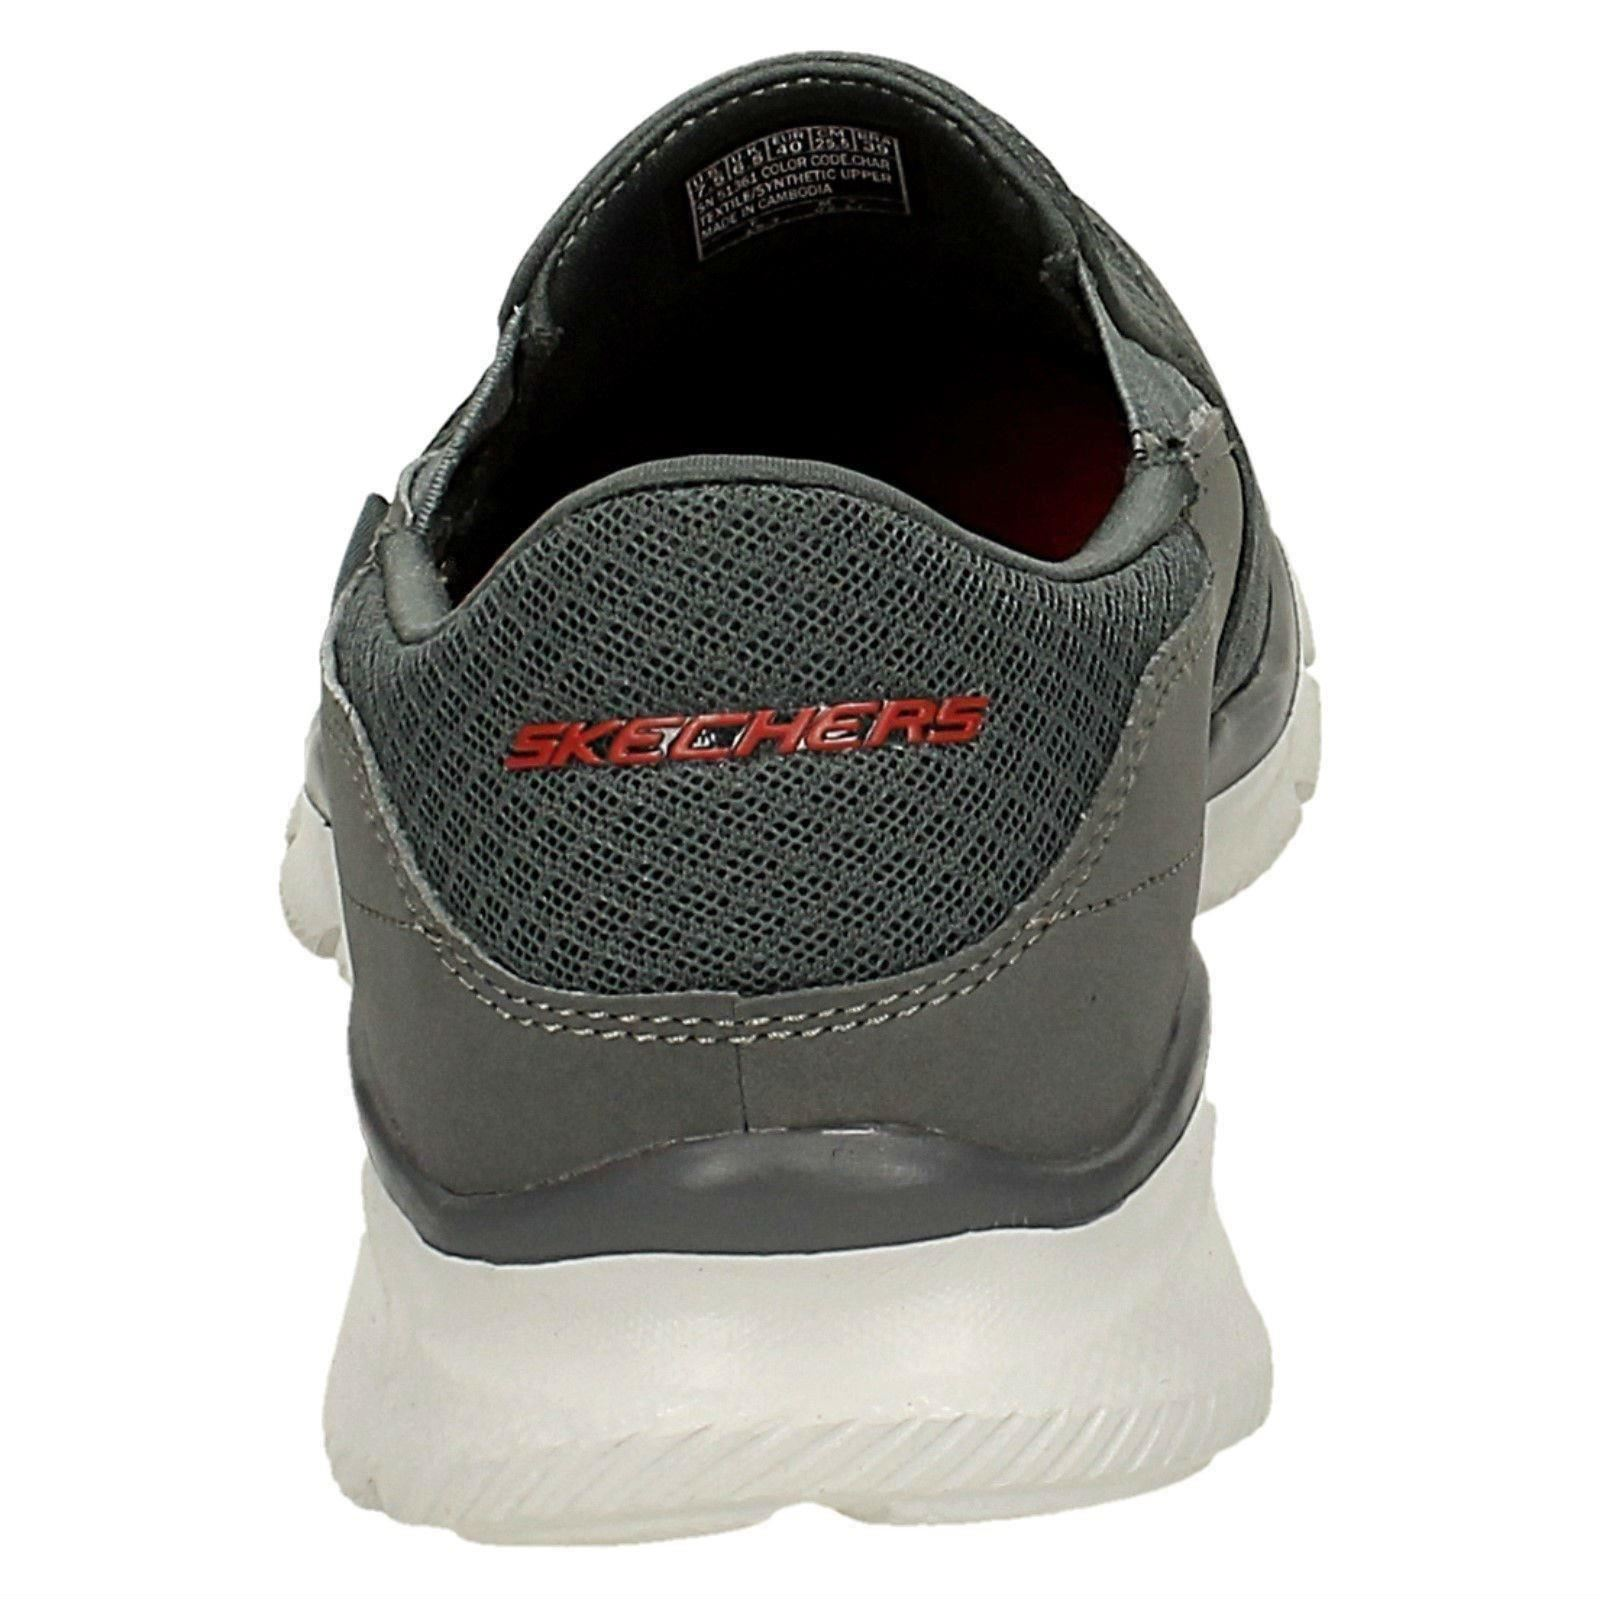 Homme On Skechers Memory Foam Slip On Homme Baskets * persistante * cb6f32